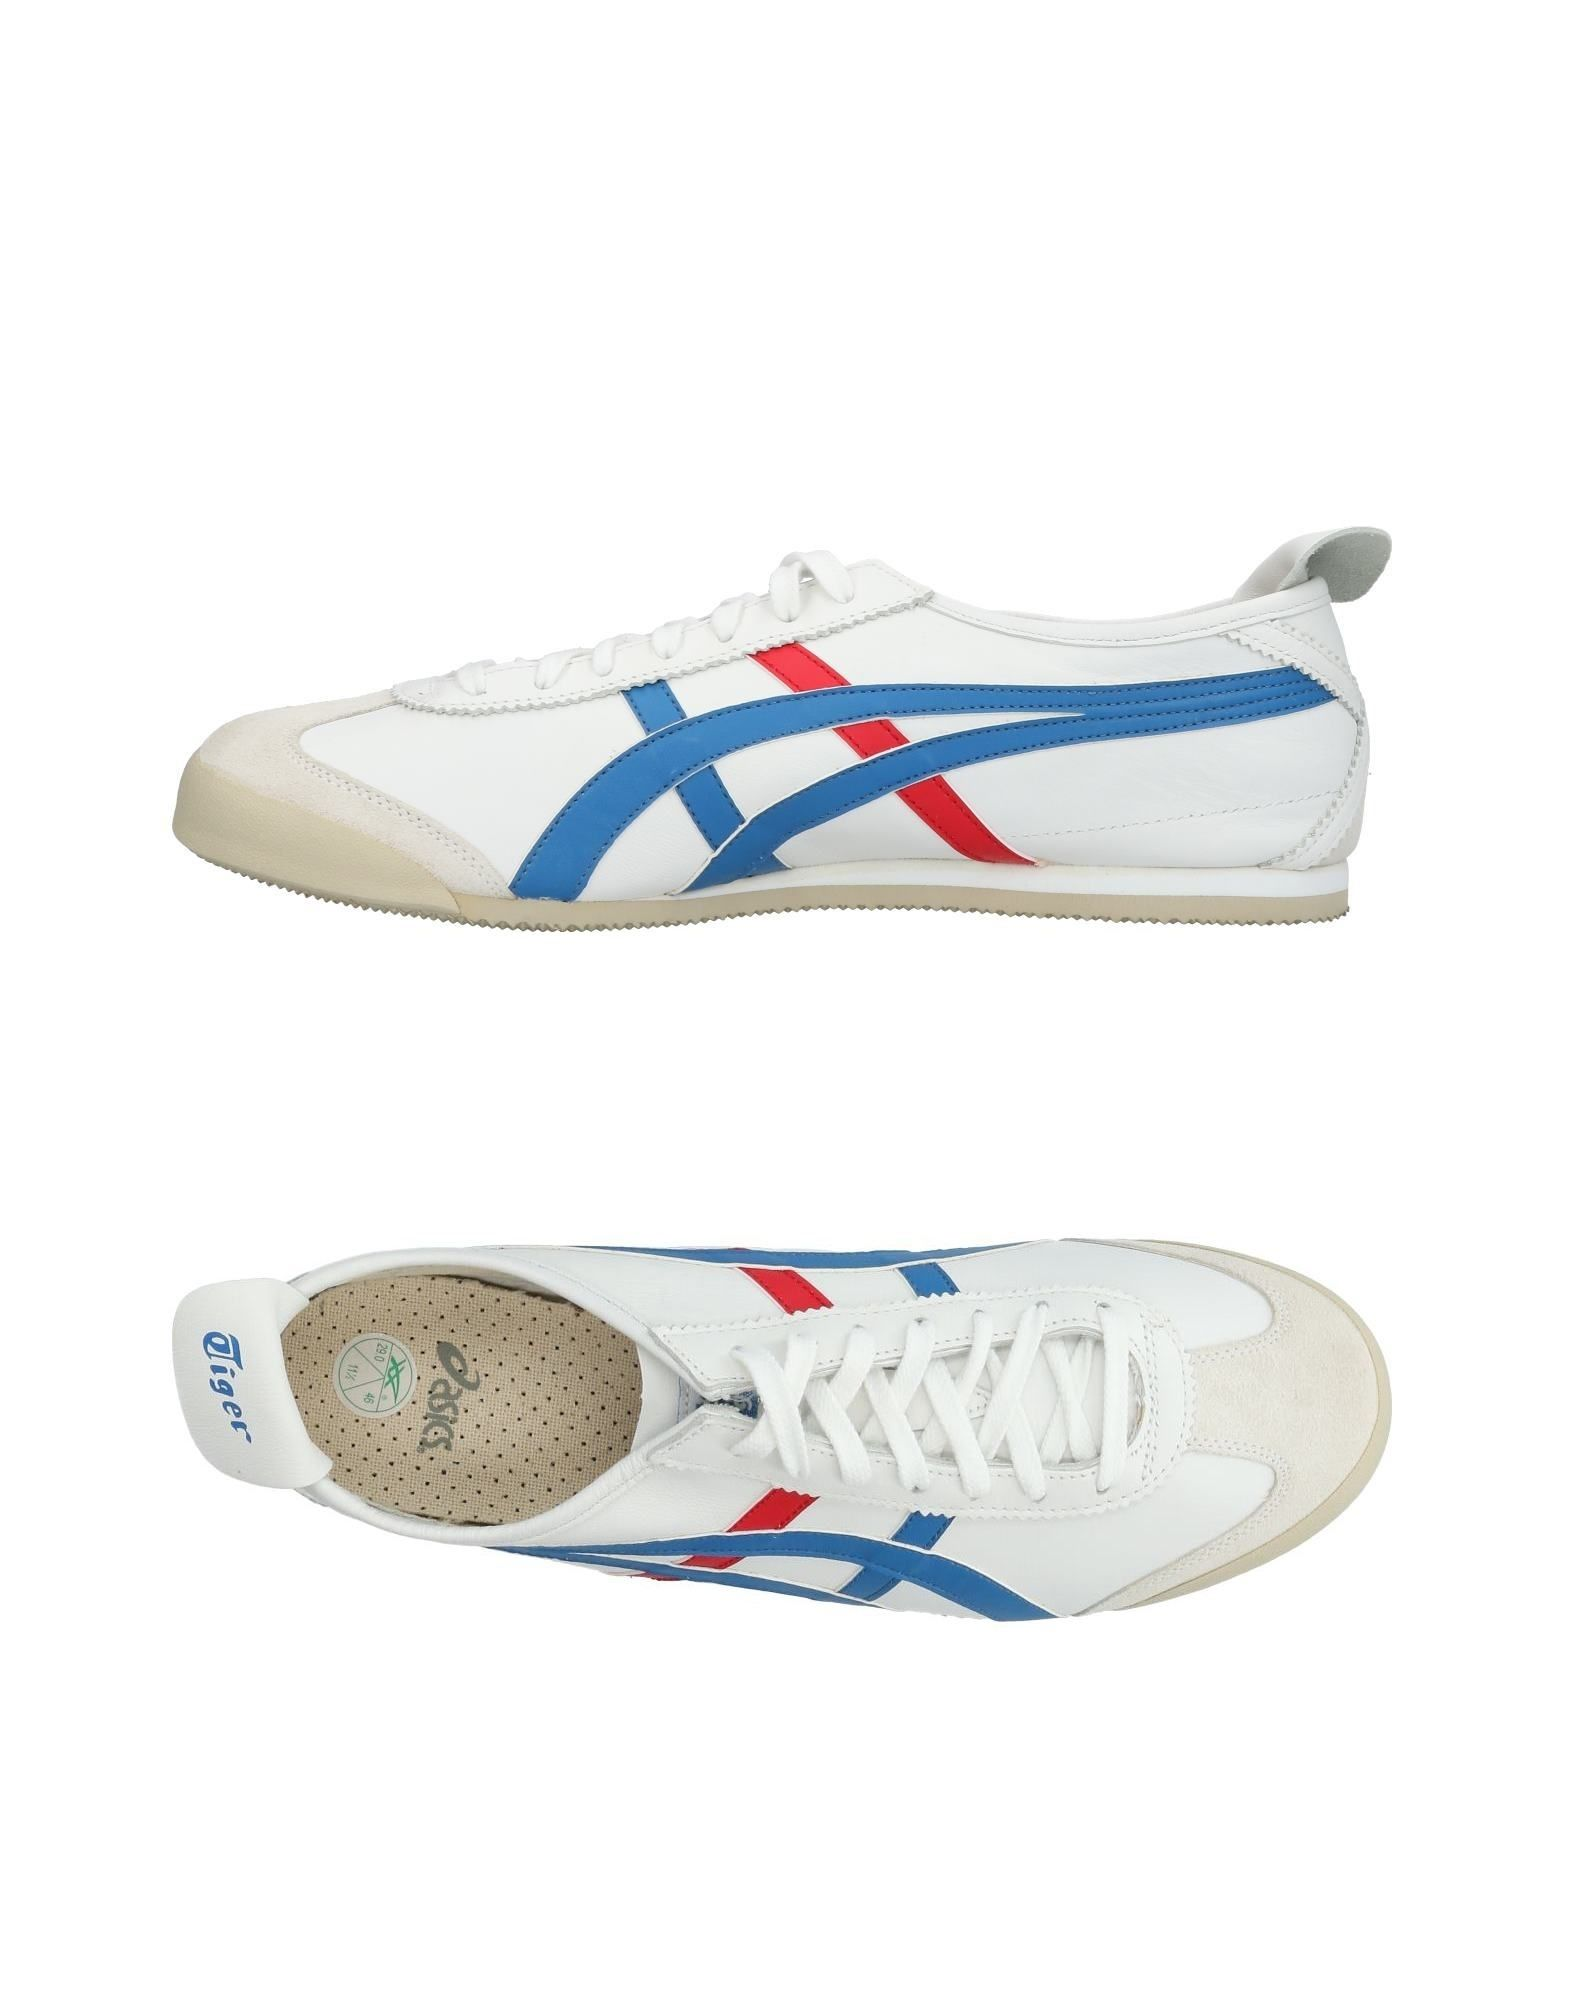 Onitsuka Tiger Sneakers - Men Onitsuka Tiger Sneakers online 11440083CU on  Canada - 11440083CU online 2a7485